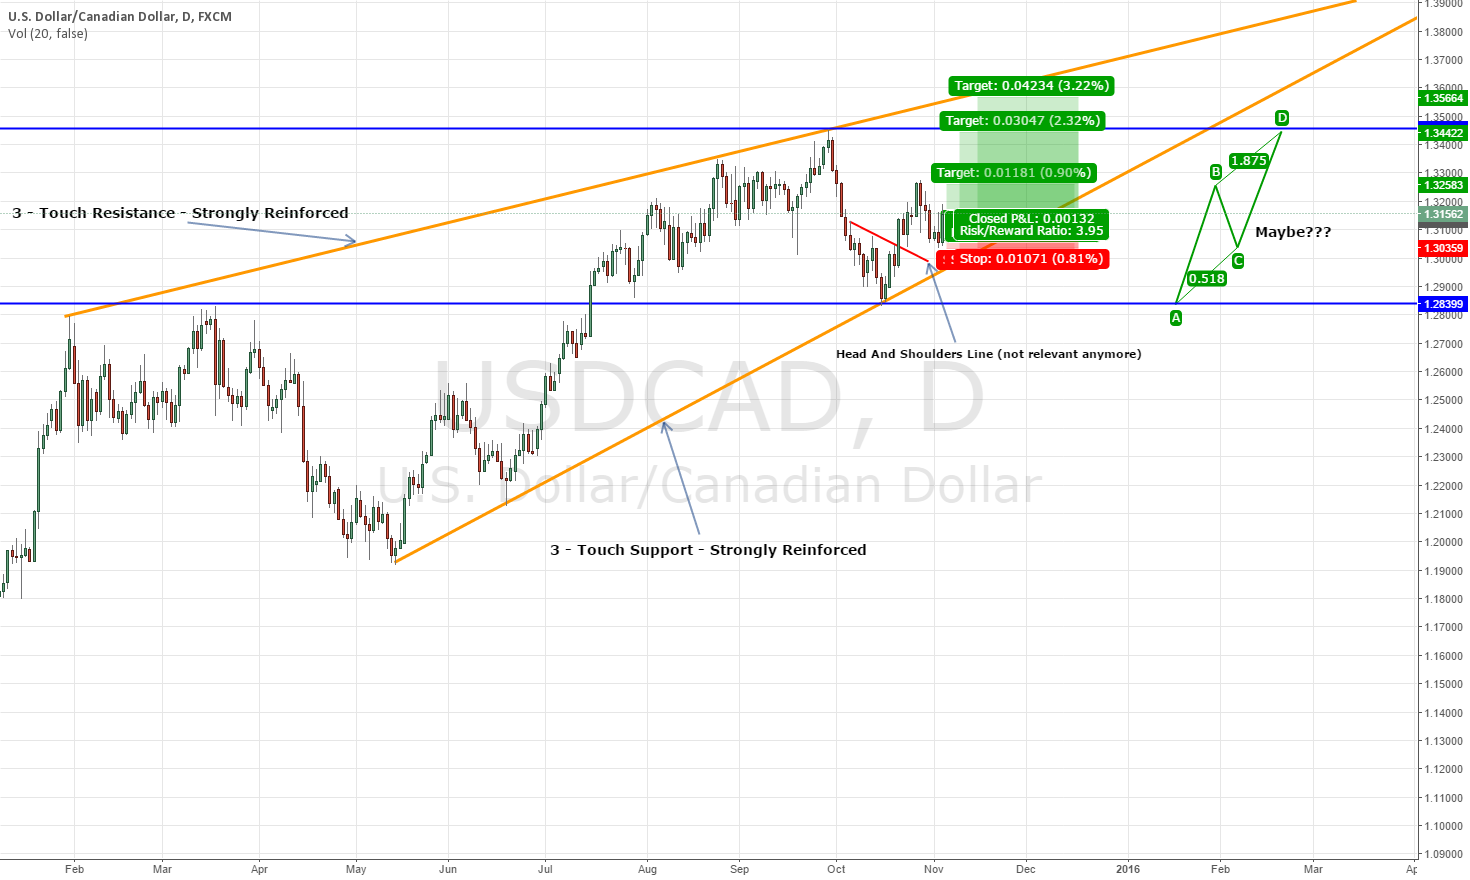 USDCAD - Long Opportunity 4 Hour to Daily TF plus Drill Down